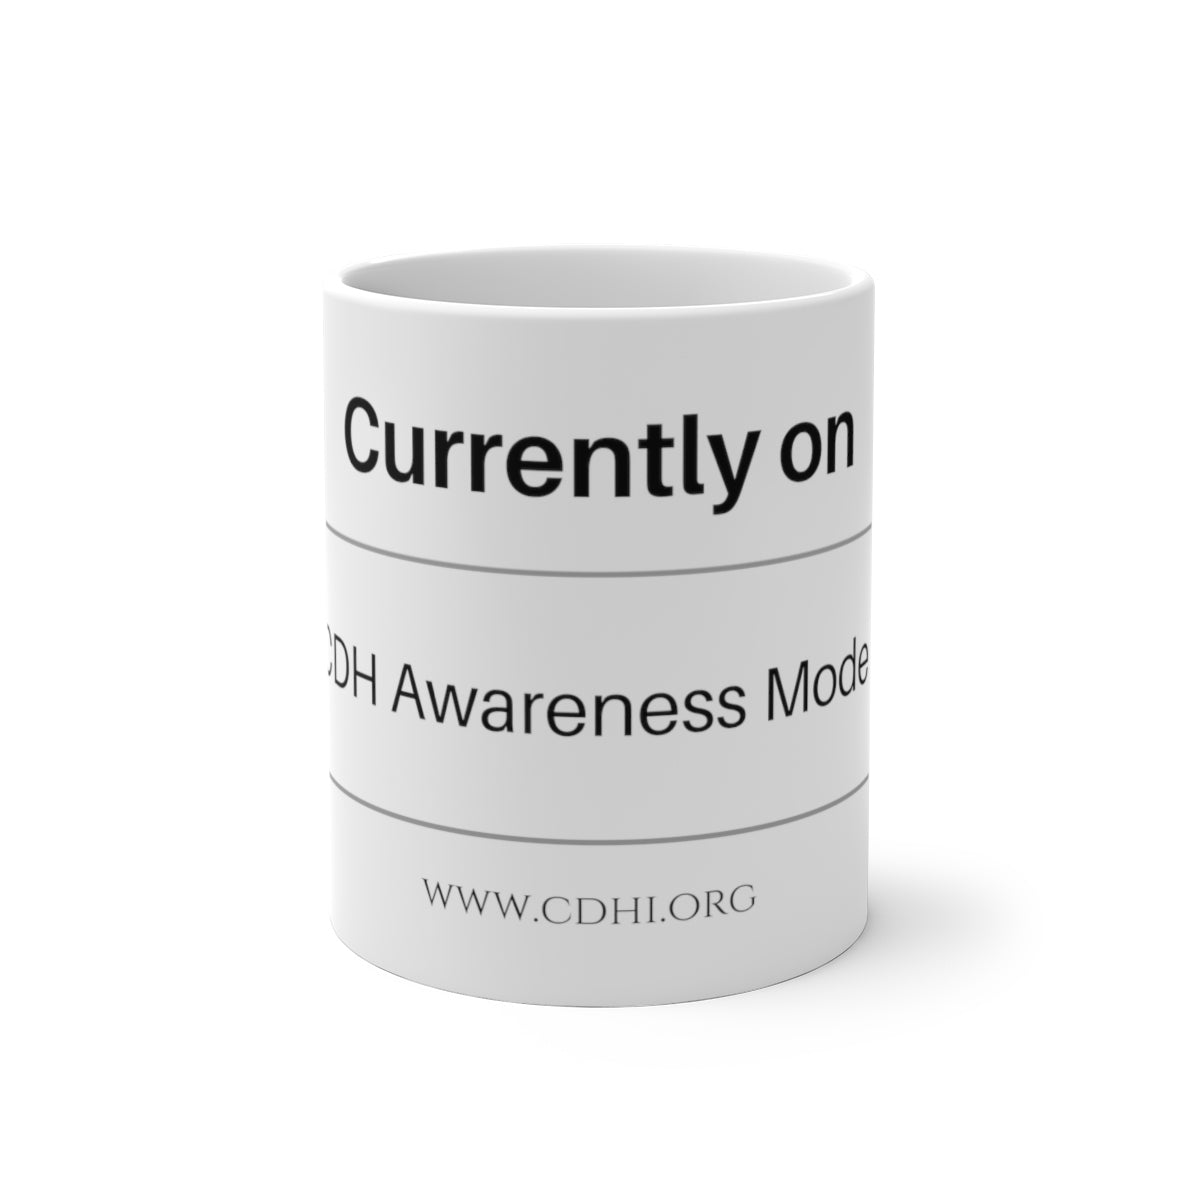 """Currently on CDH Awareness Mode"" Color Changing Mug - CDH International"